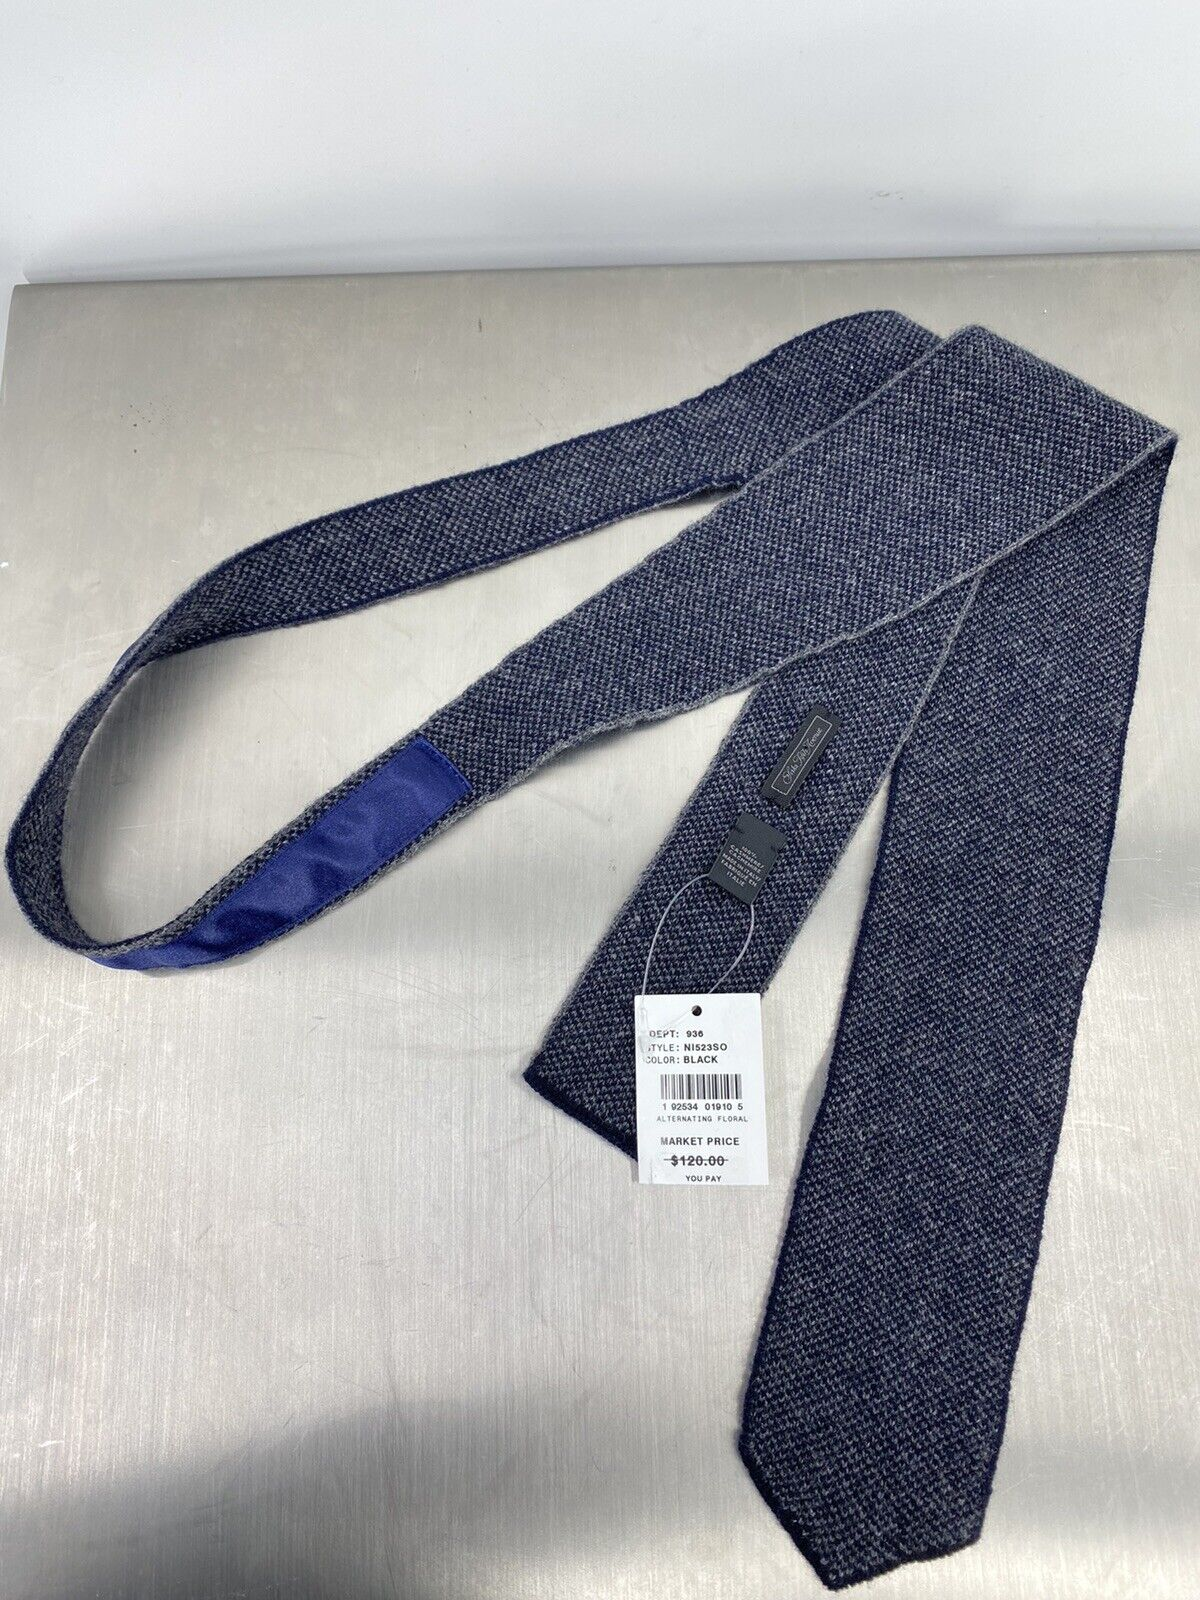 Saks Fifth Avenue 100% Cashmere Gray Tie Made In Italy (B9)